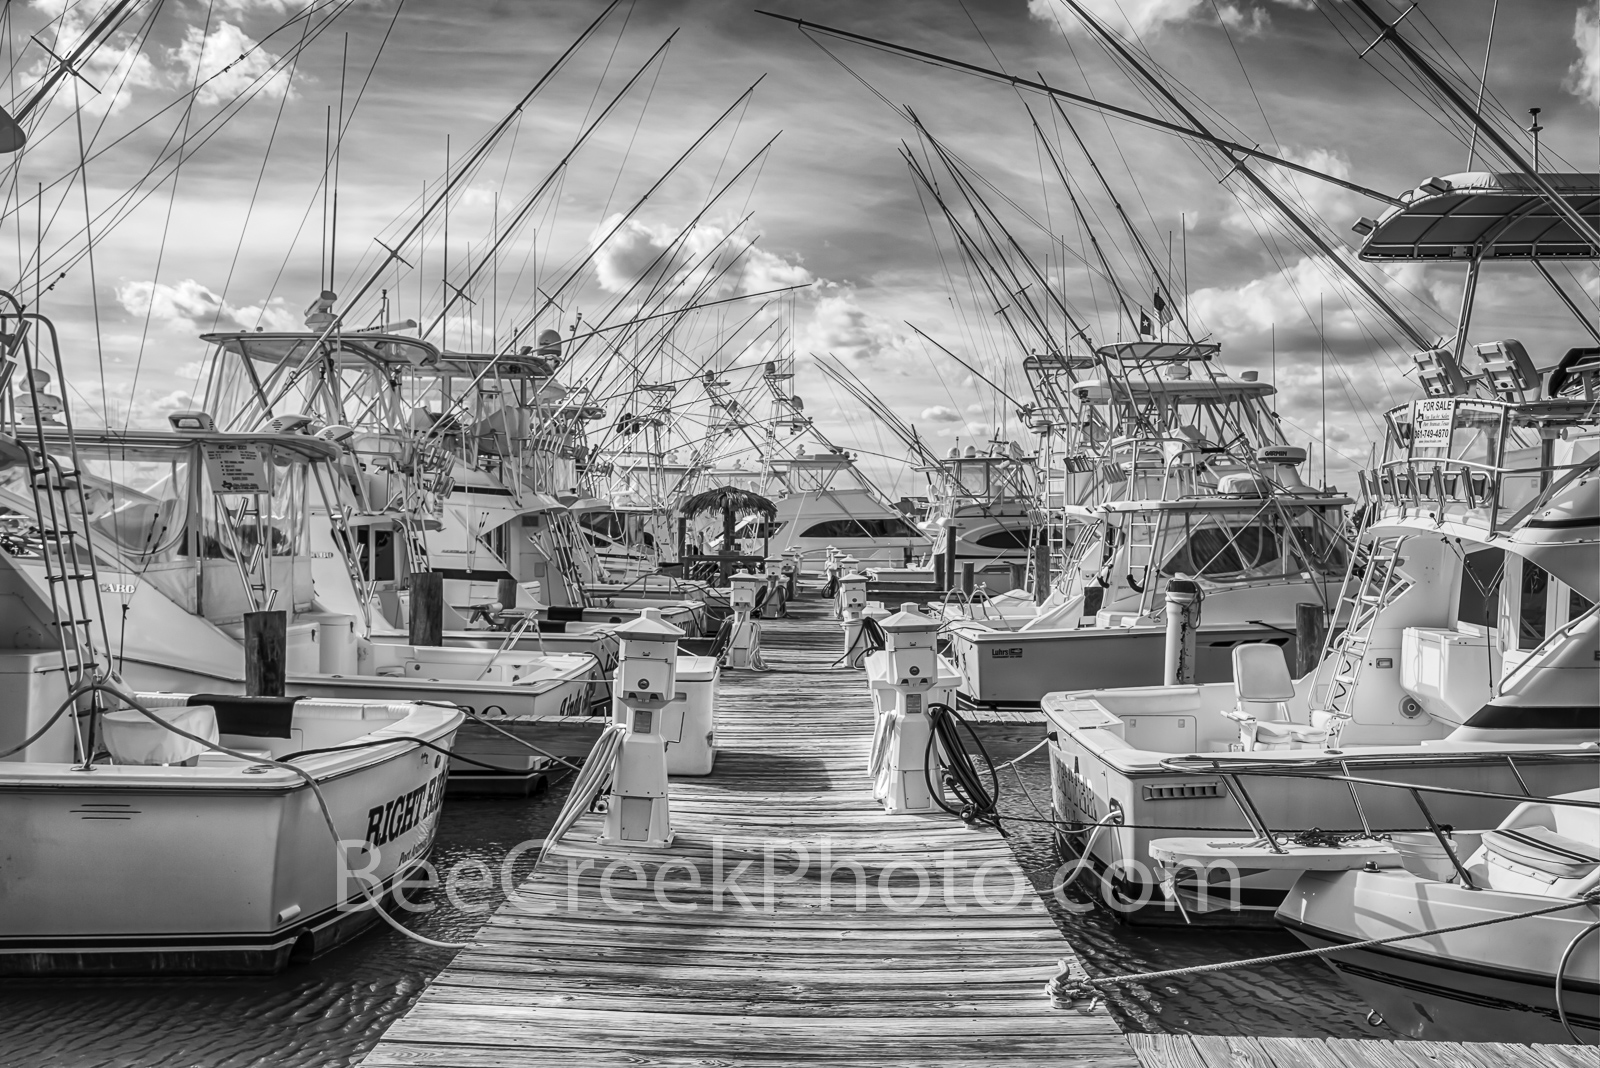 Port Aransas, fishing, boats, b w, black and whtie,  Port A, fishing boats, Texas, boats, beach, ocean, coast, texas coast, sea, beach, seascape, coastal,, photo